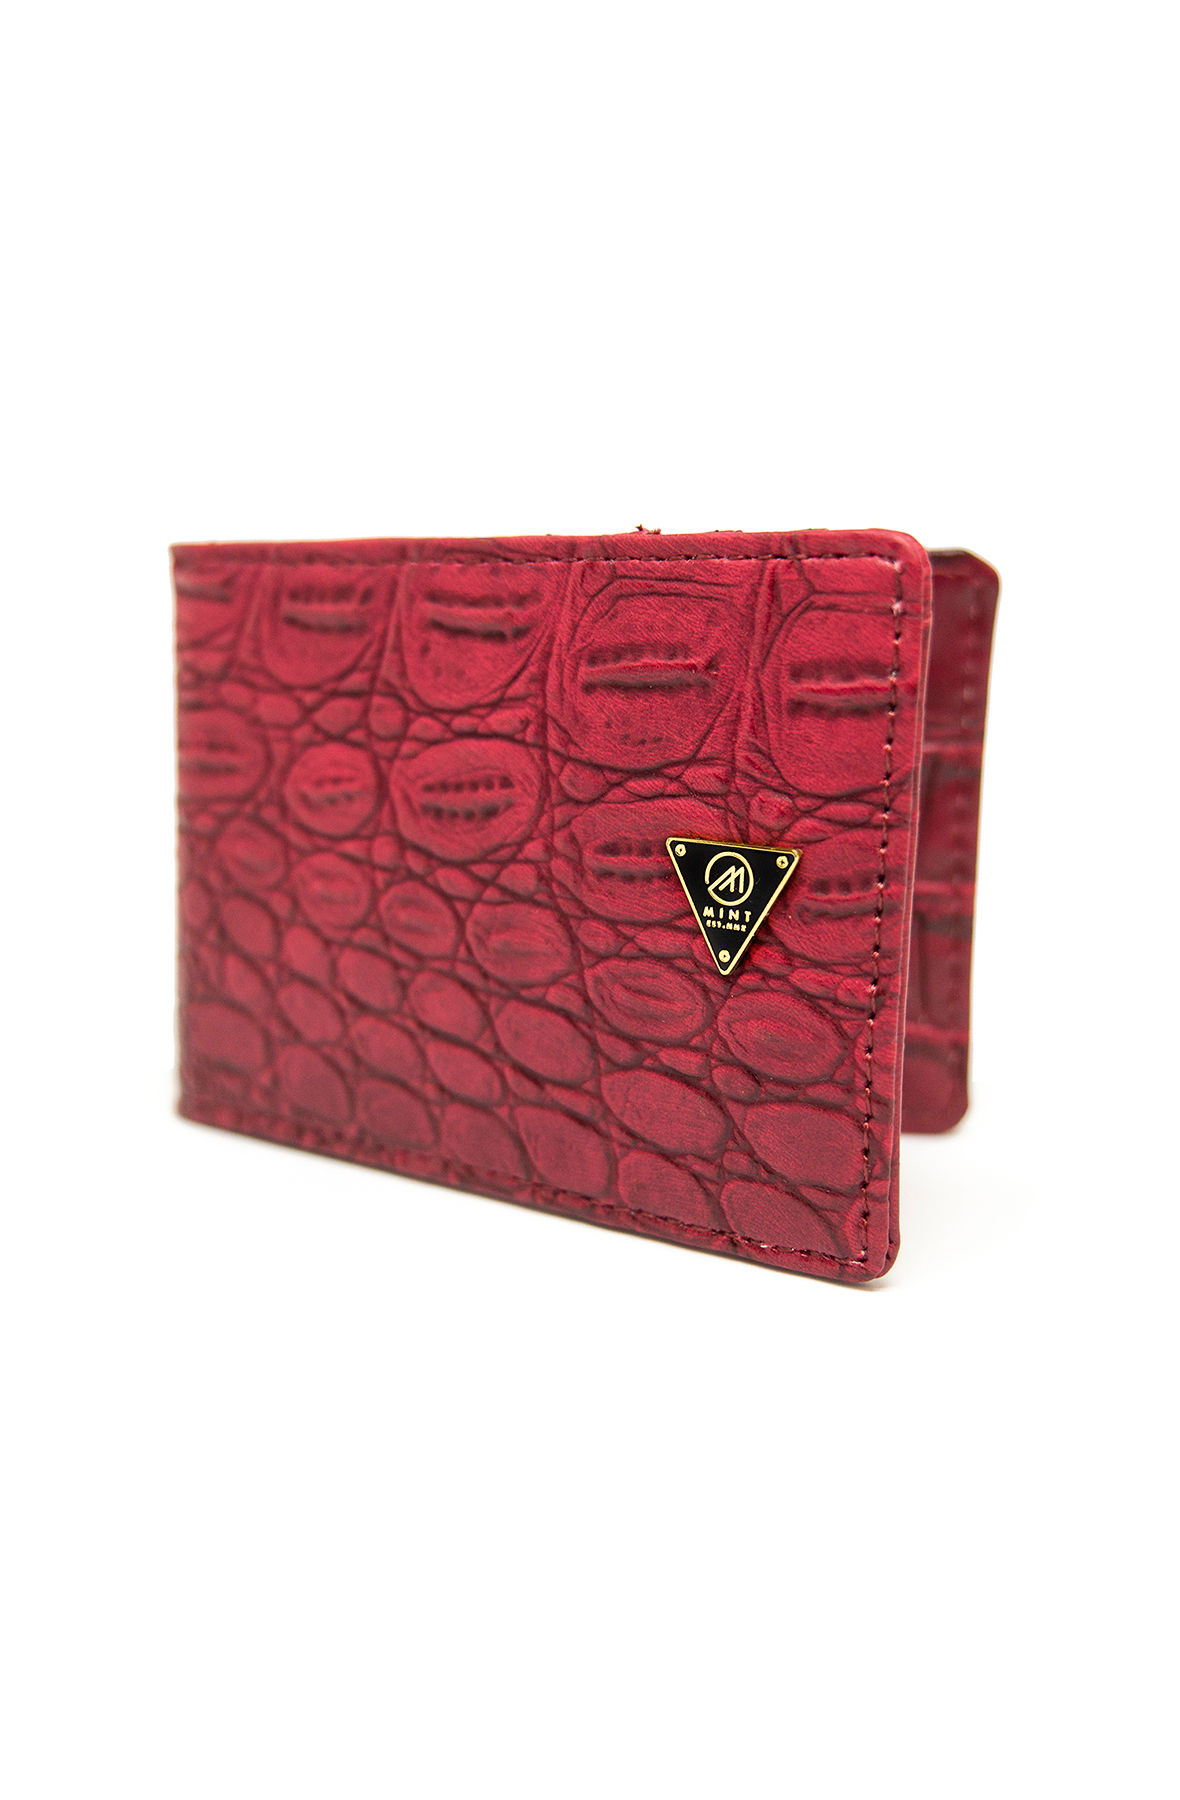 Image of Mint Croc Red Mag Wallet